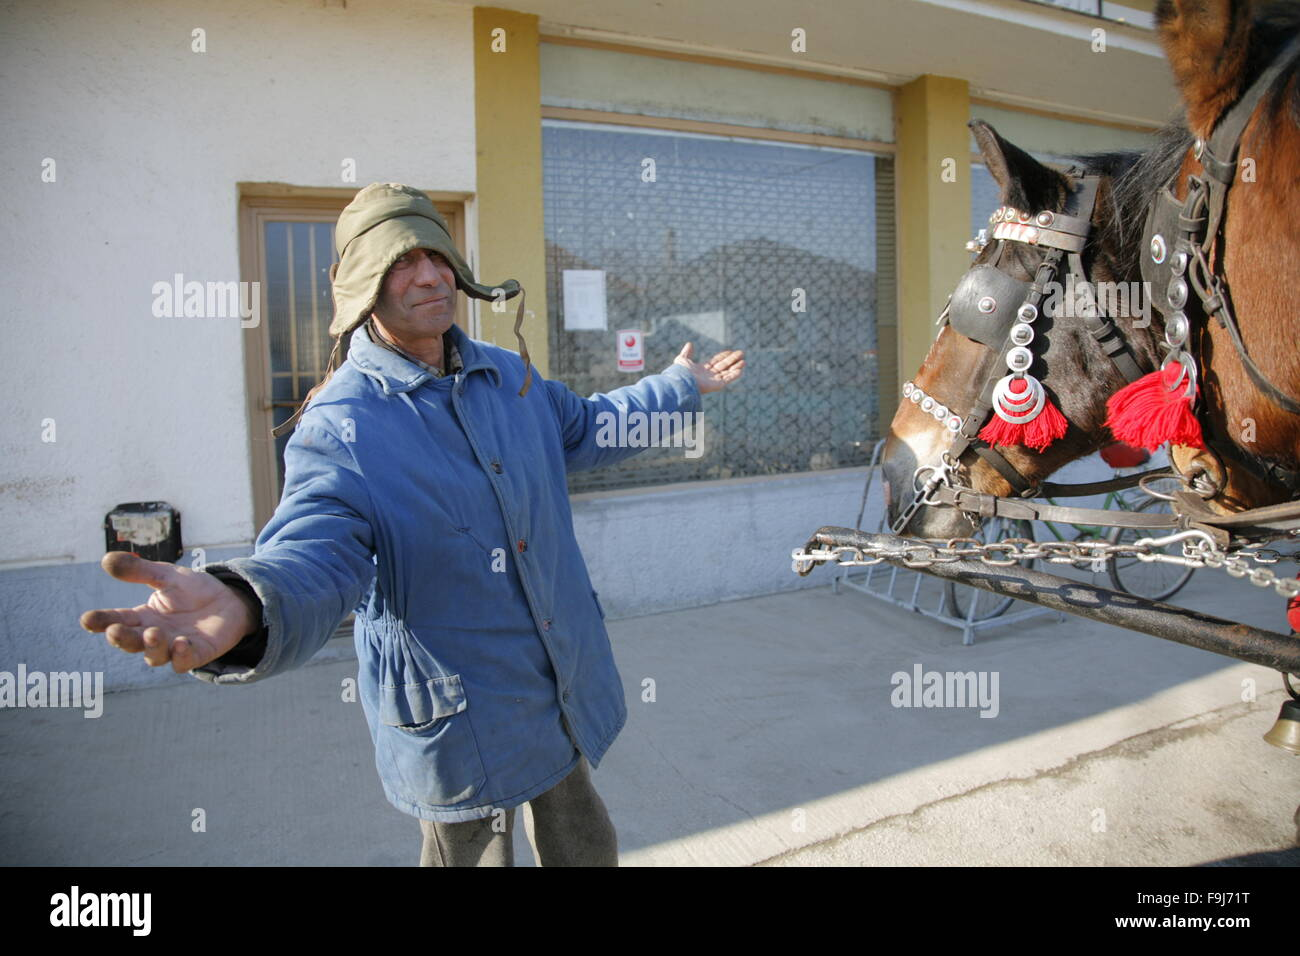 Gipsy man in front of village inn. Slovakia. Social problems, alcohol adicted, poverty, alcoholism. - Stock Image